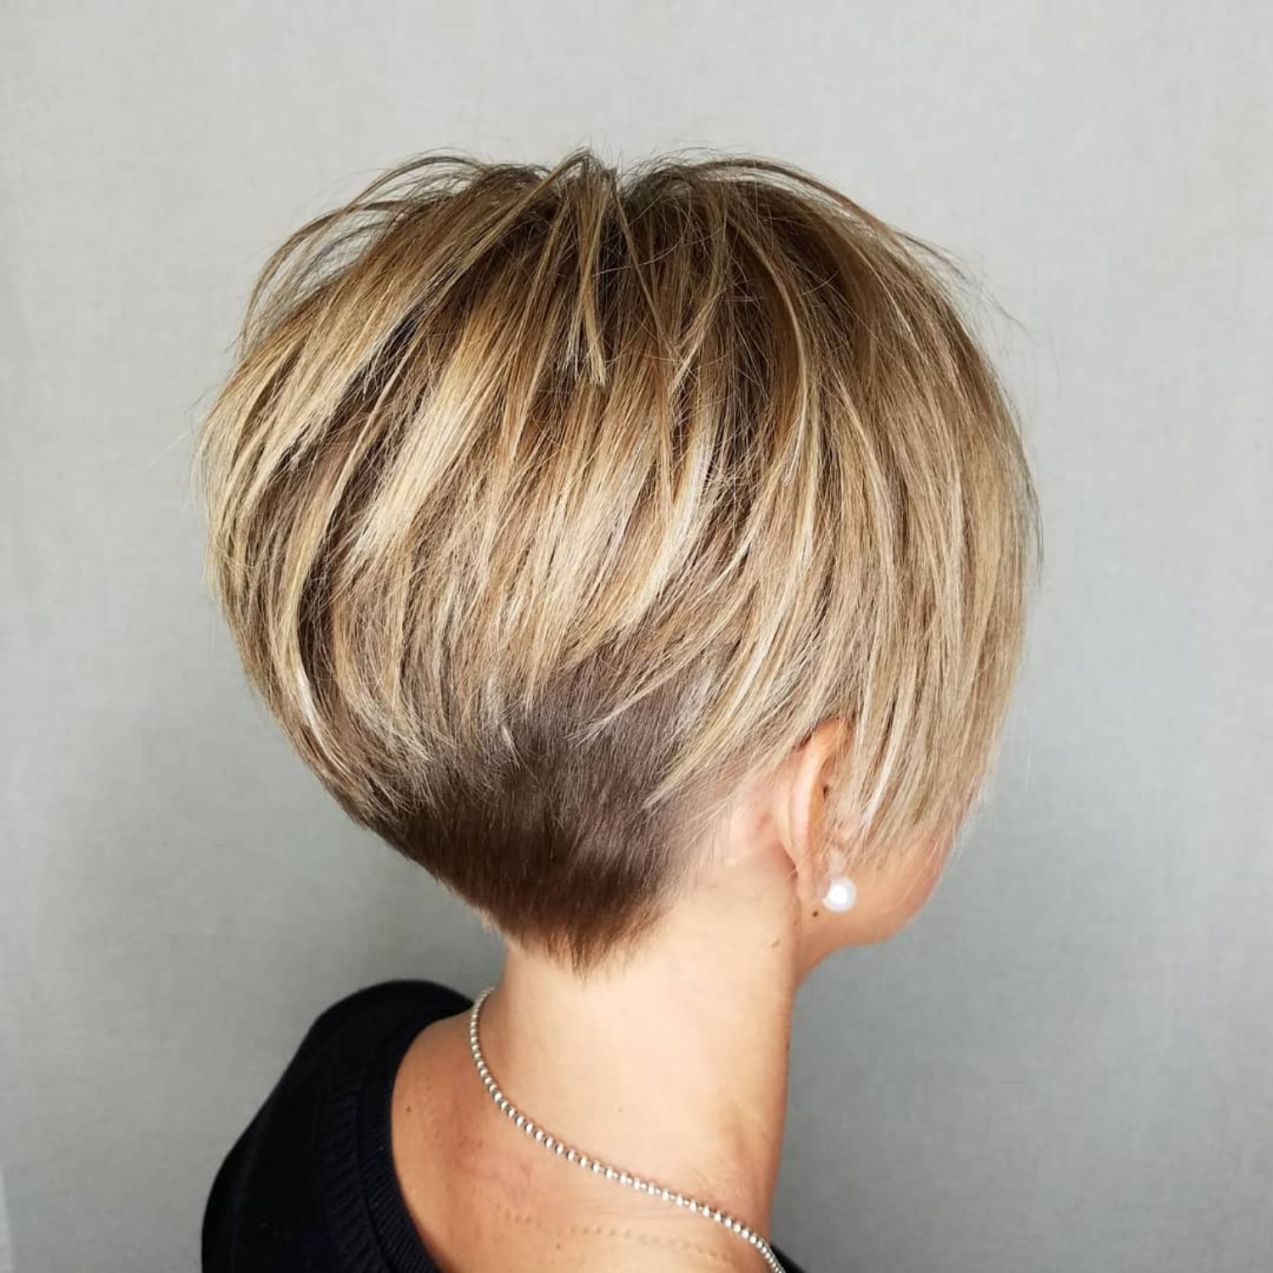 Pixie haircuts for thick hair u ideas of ideal short haircuts in